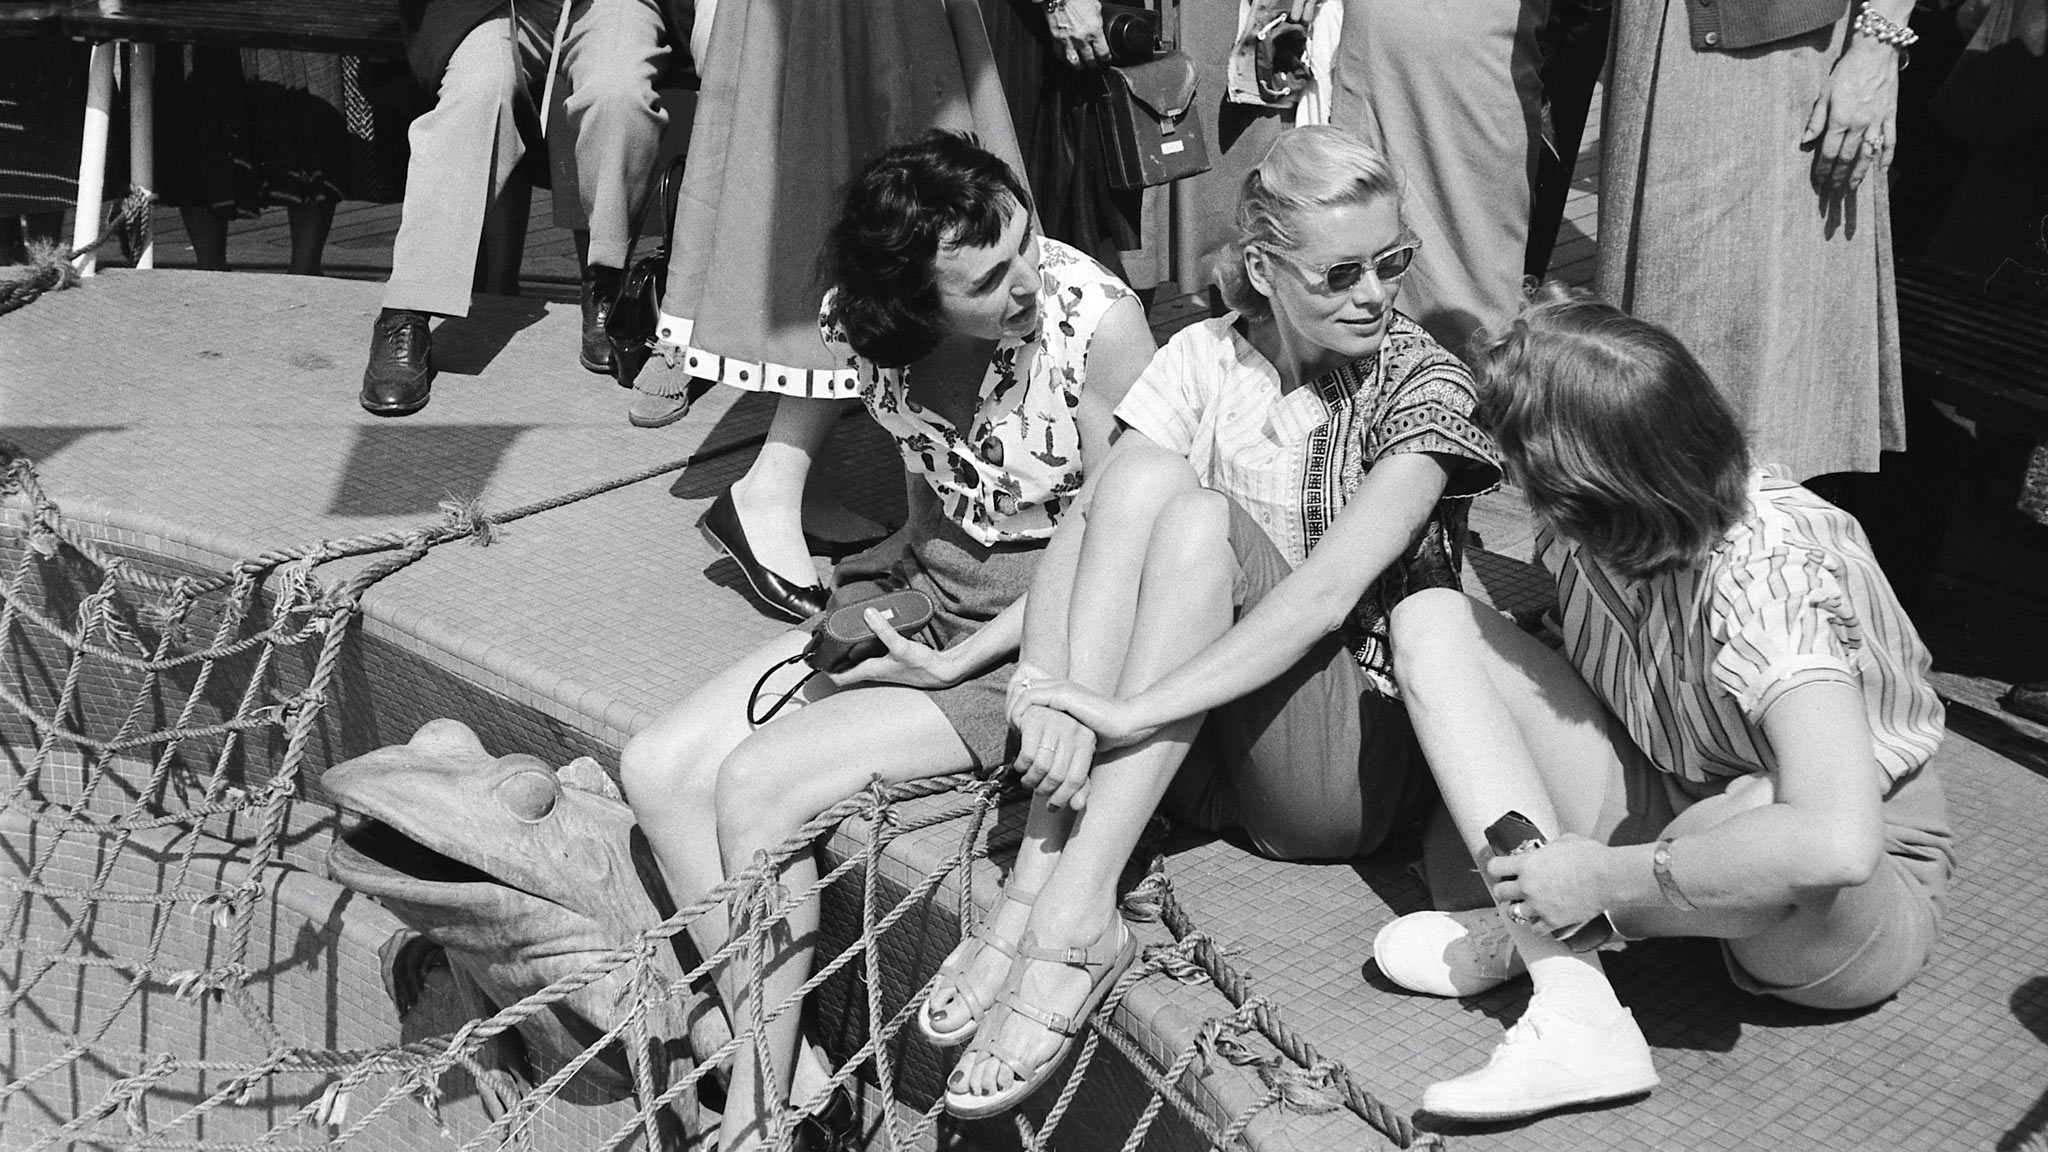 2971a95ea Step out in Mediterranean sandals. The Mediterranean sandal has become a  fashion staple. Grace Kelly ...